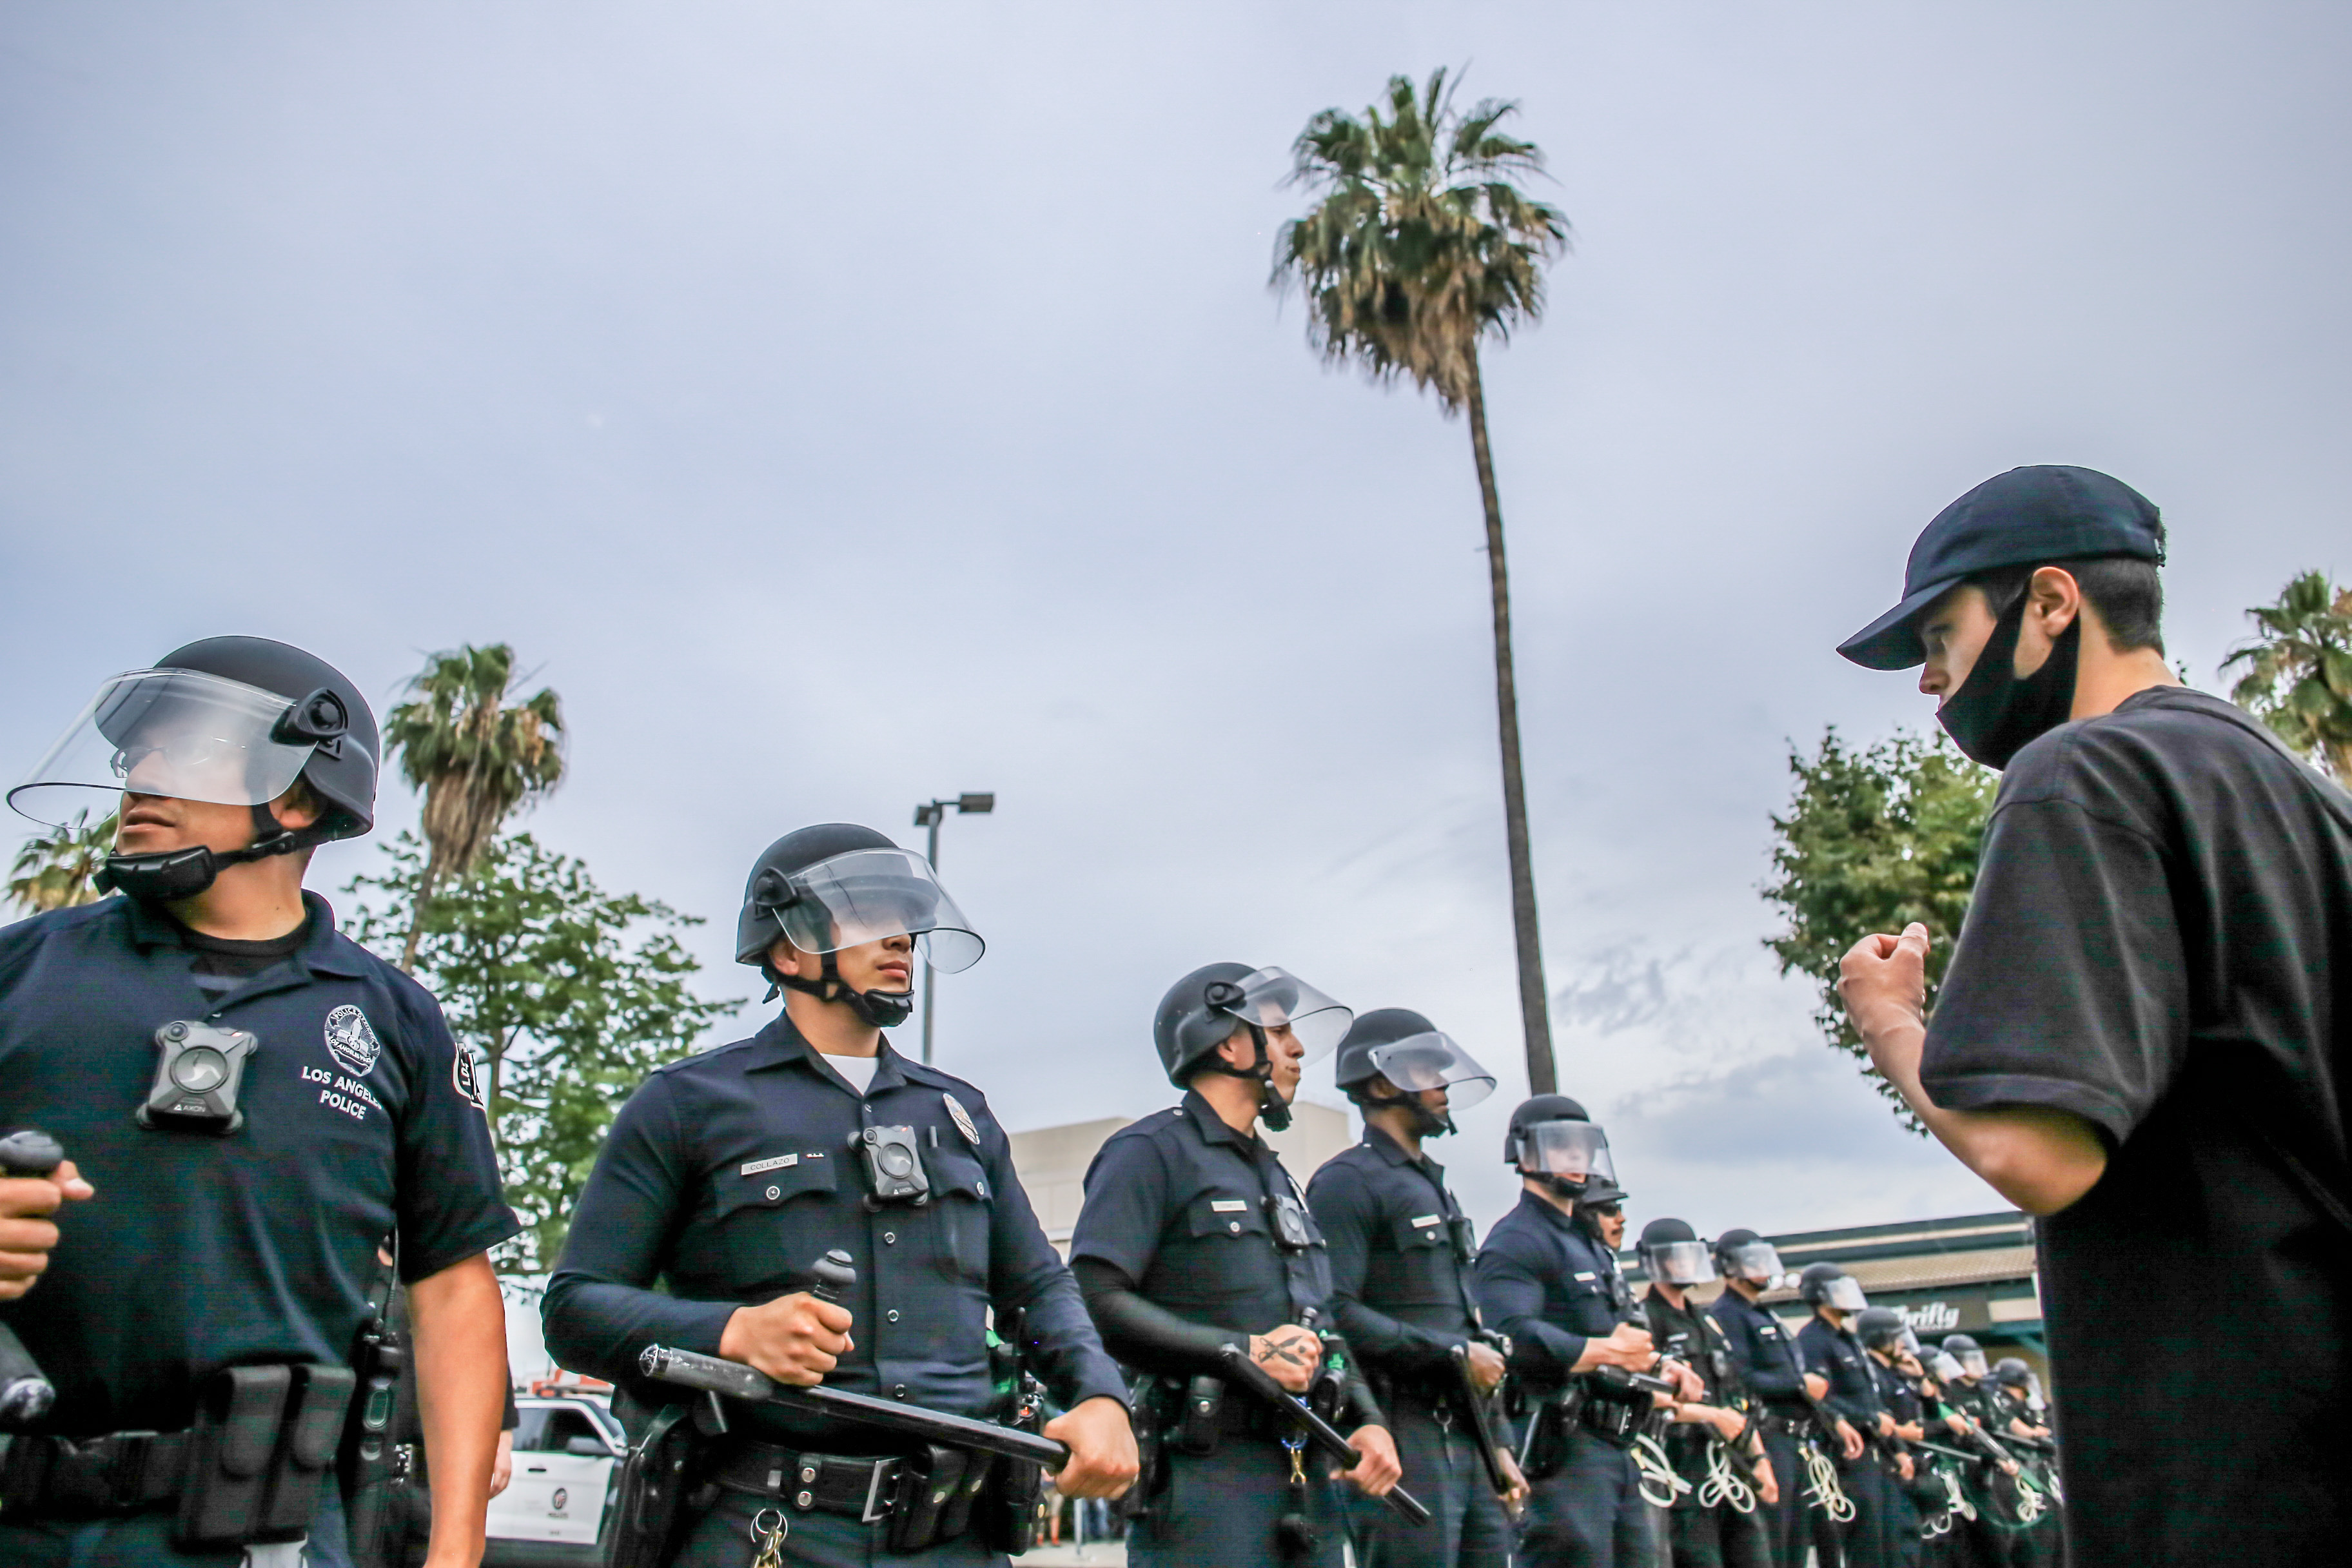 Videos often contradict what police say in reports. Here's why some officers continue to lie